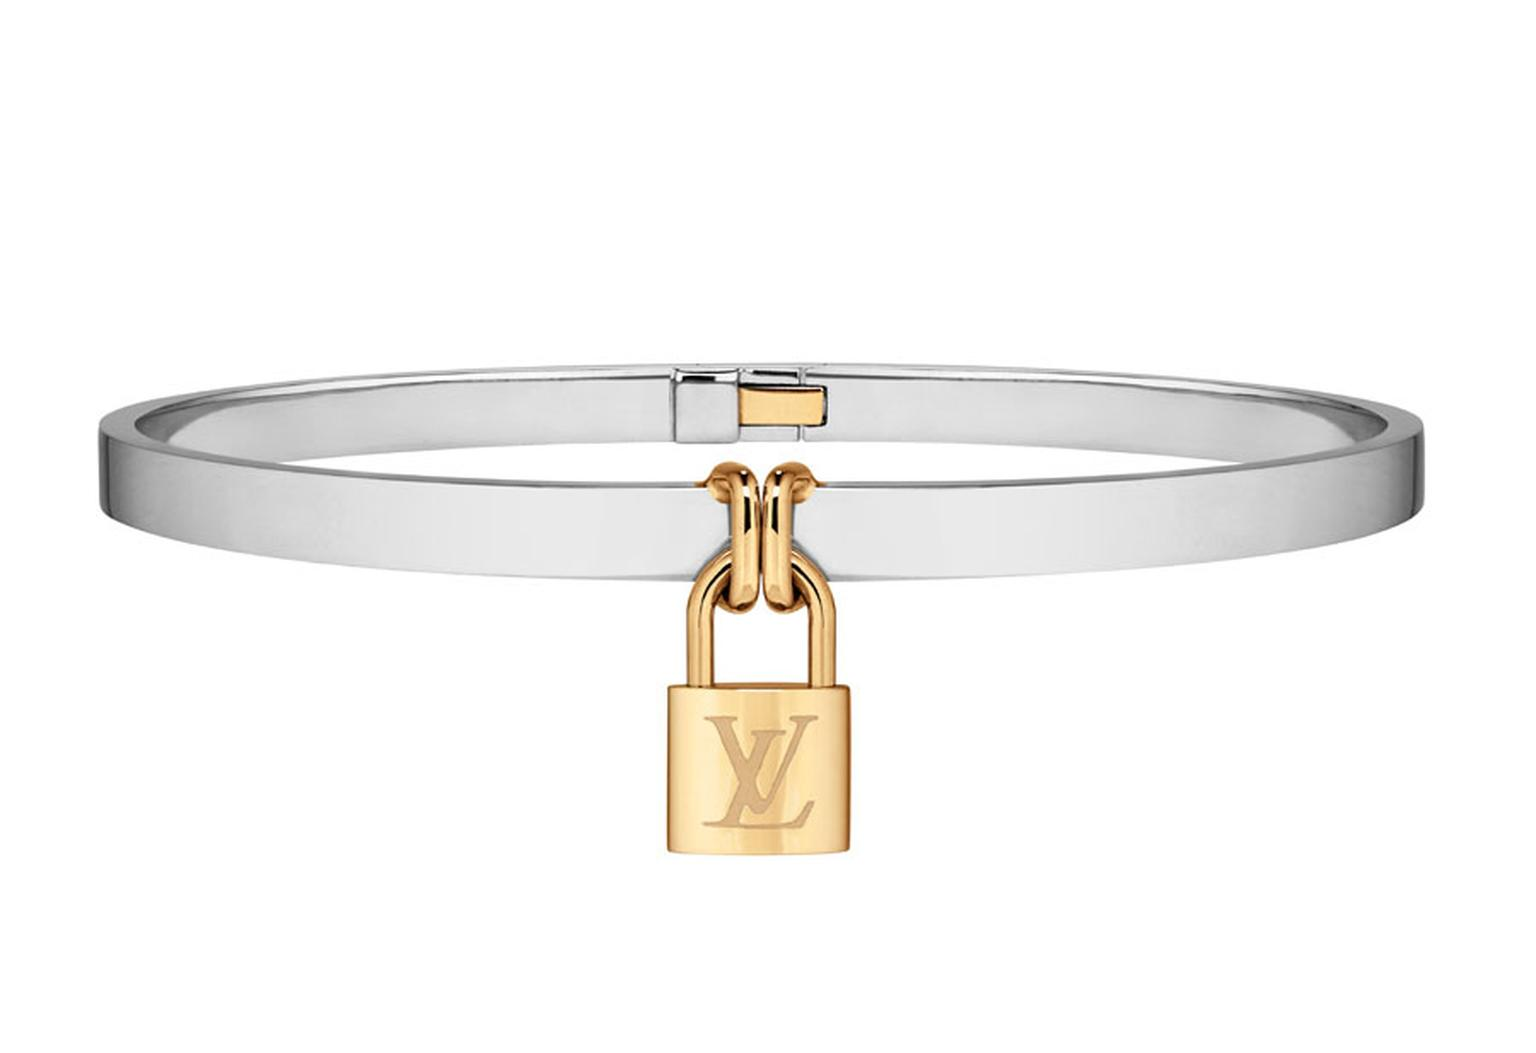 Louis-Vuitton-BRACELET-LOCKIT-BICO_Vue-de-face